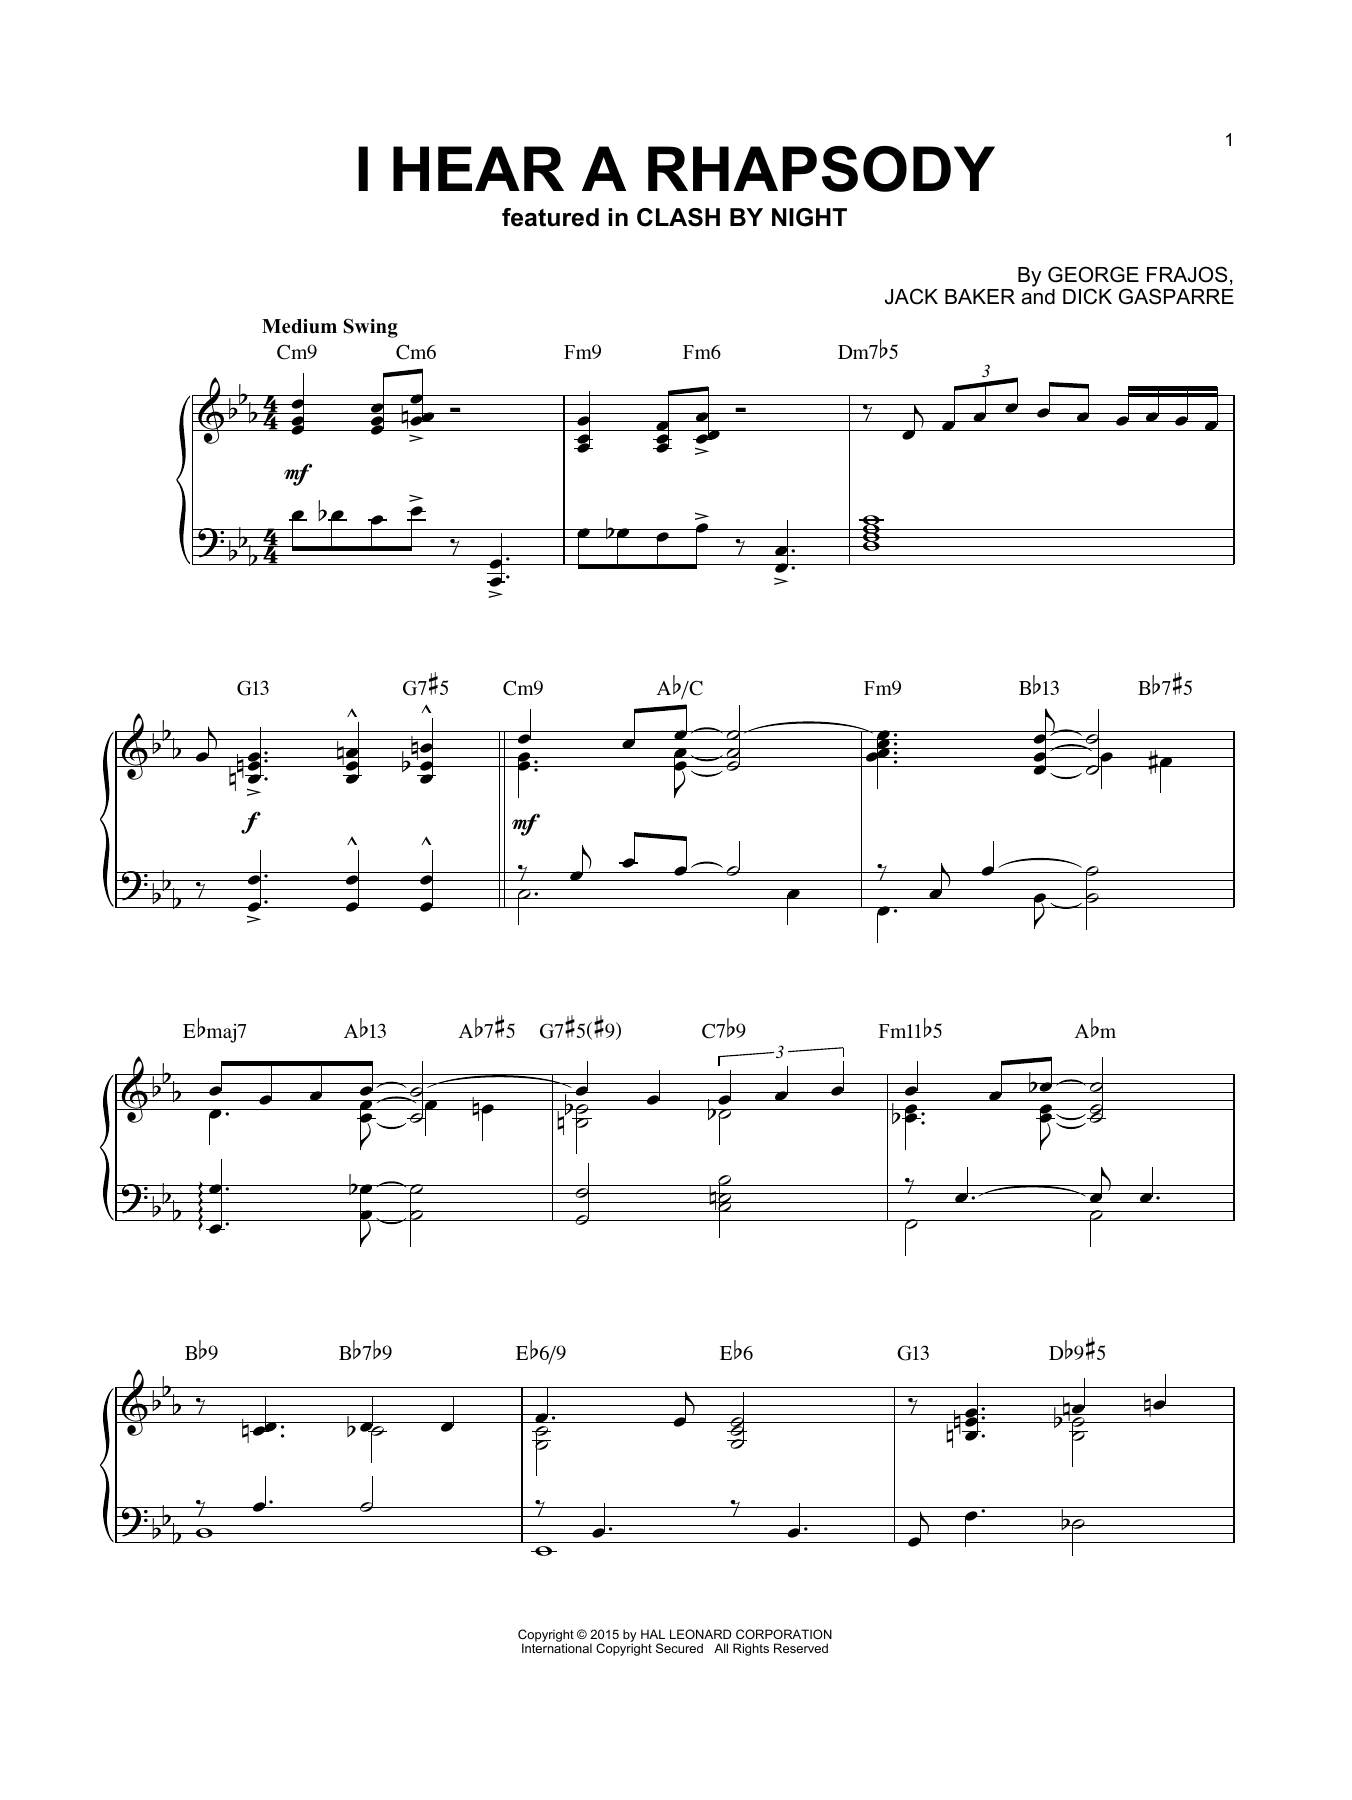 I Hear A Rhapsody Piano Sheet Music By Dick Gasparre Solo Piano